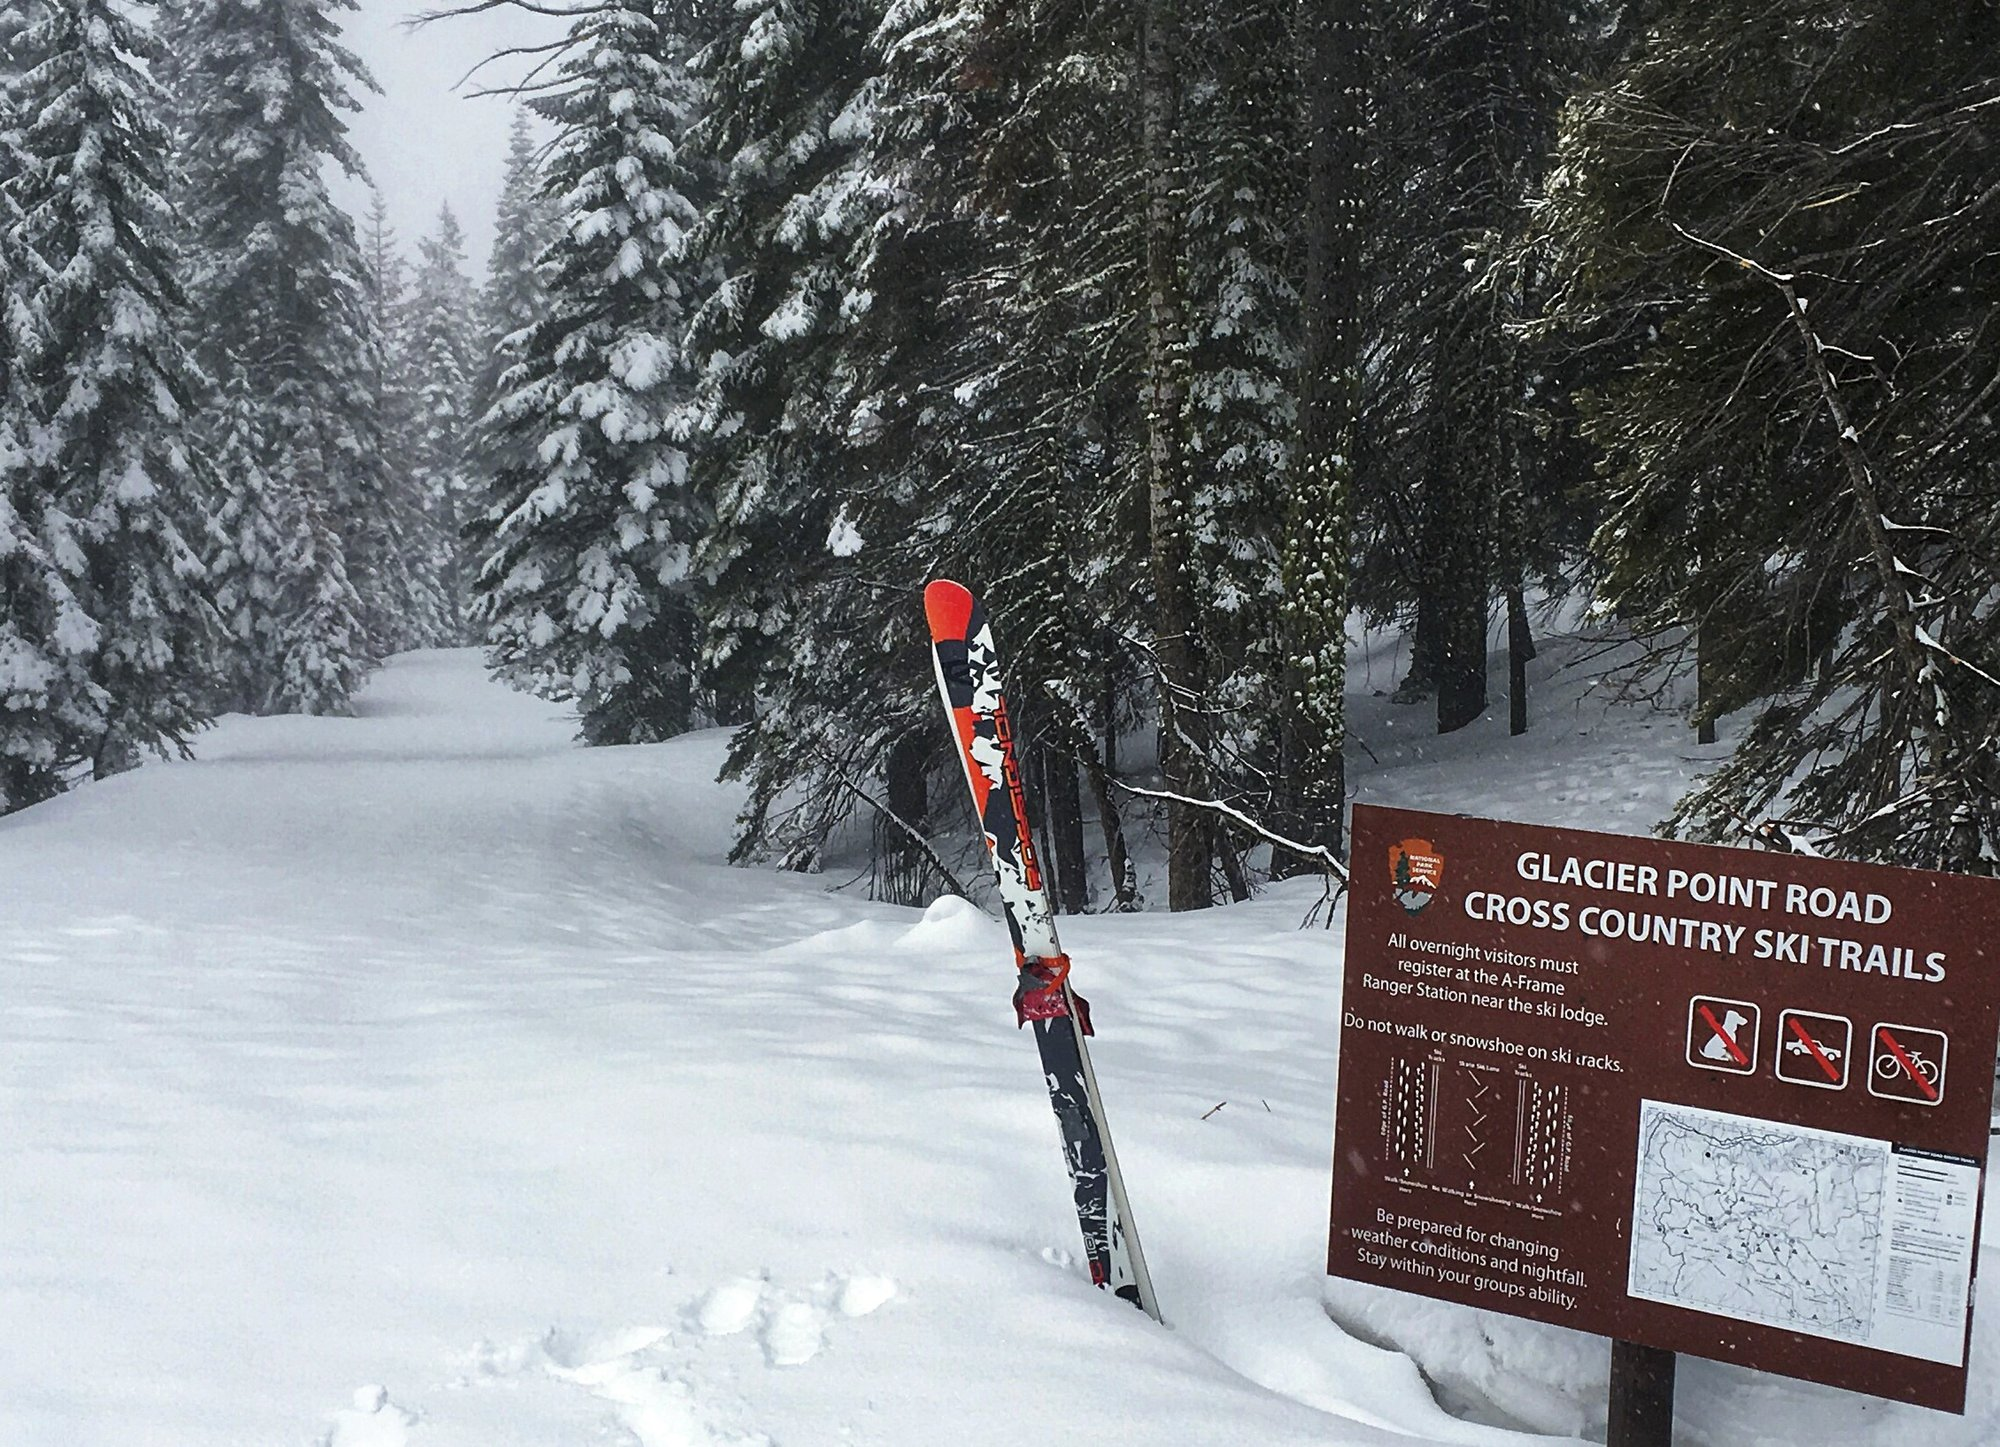 Yosemite to remain open for skiing 2 weeks longer